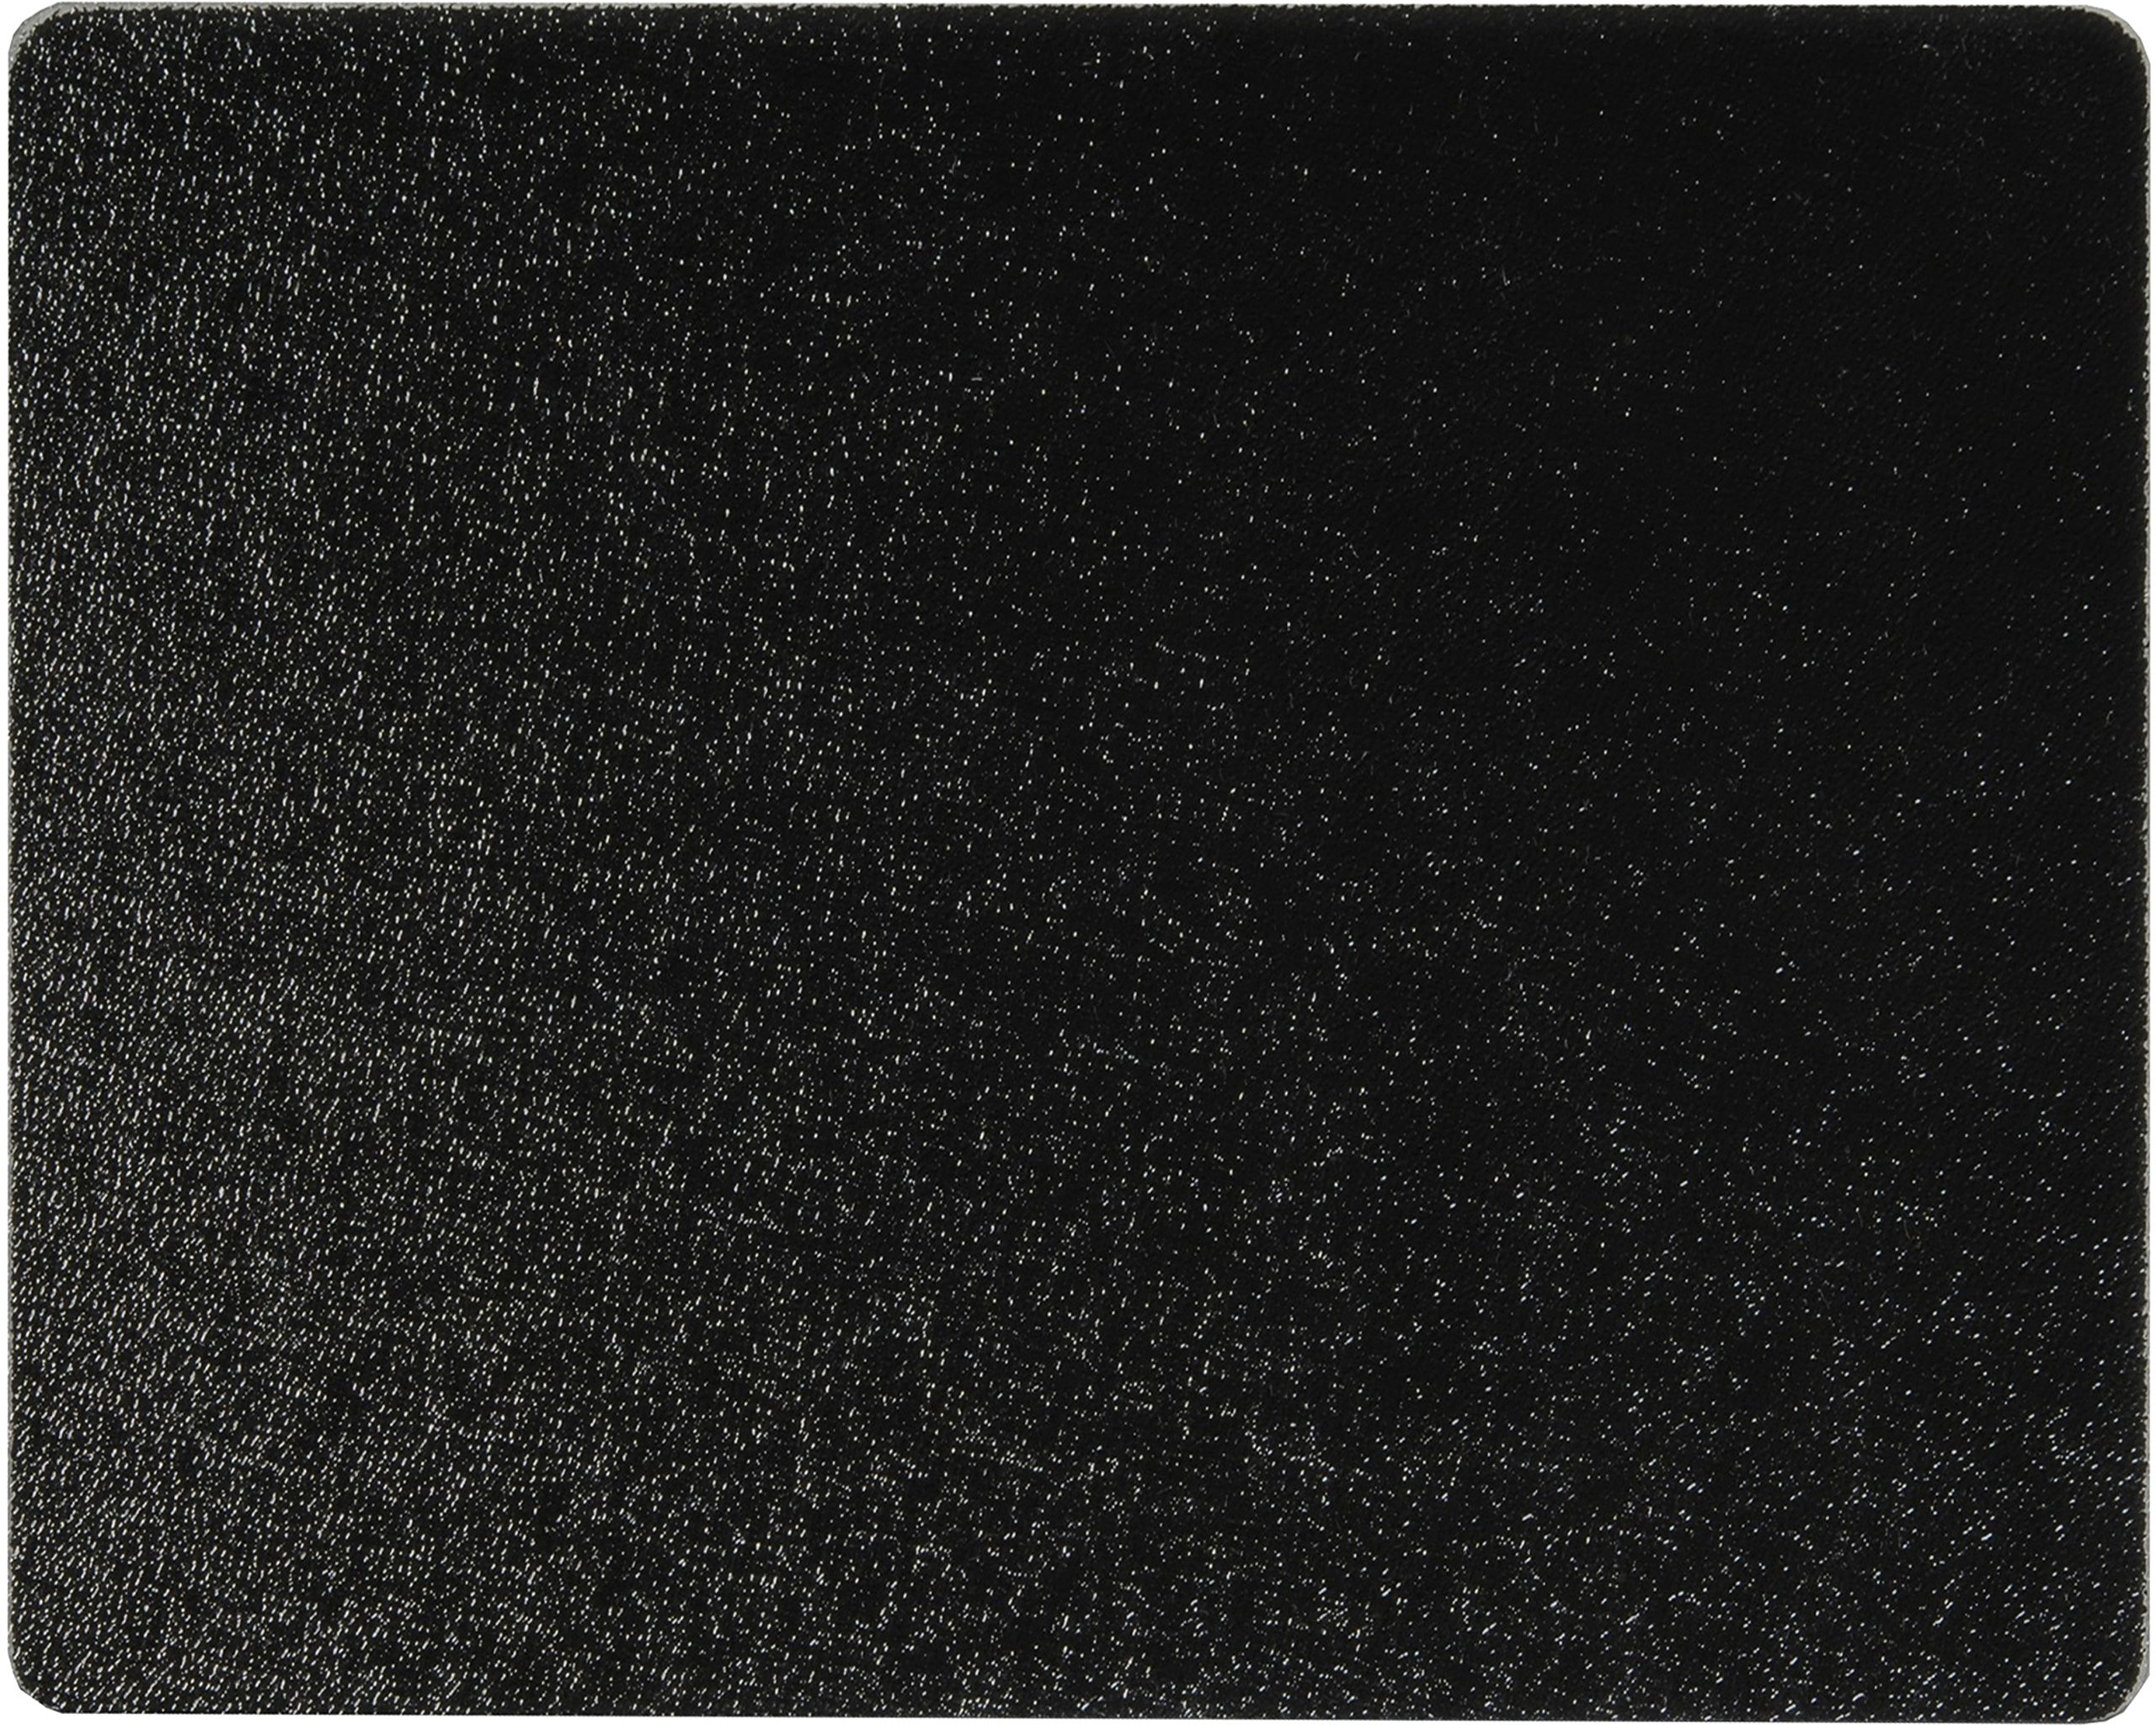 Surface Saver Vance 20 X 16 inch Black Tempered Glass Cutting Board, 82016BK, 20 X 16-Inch,